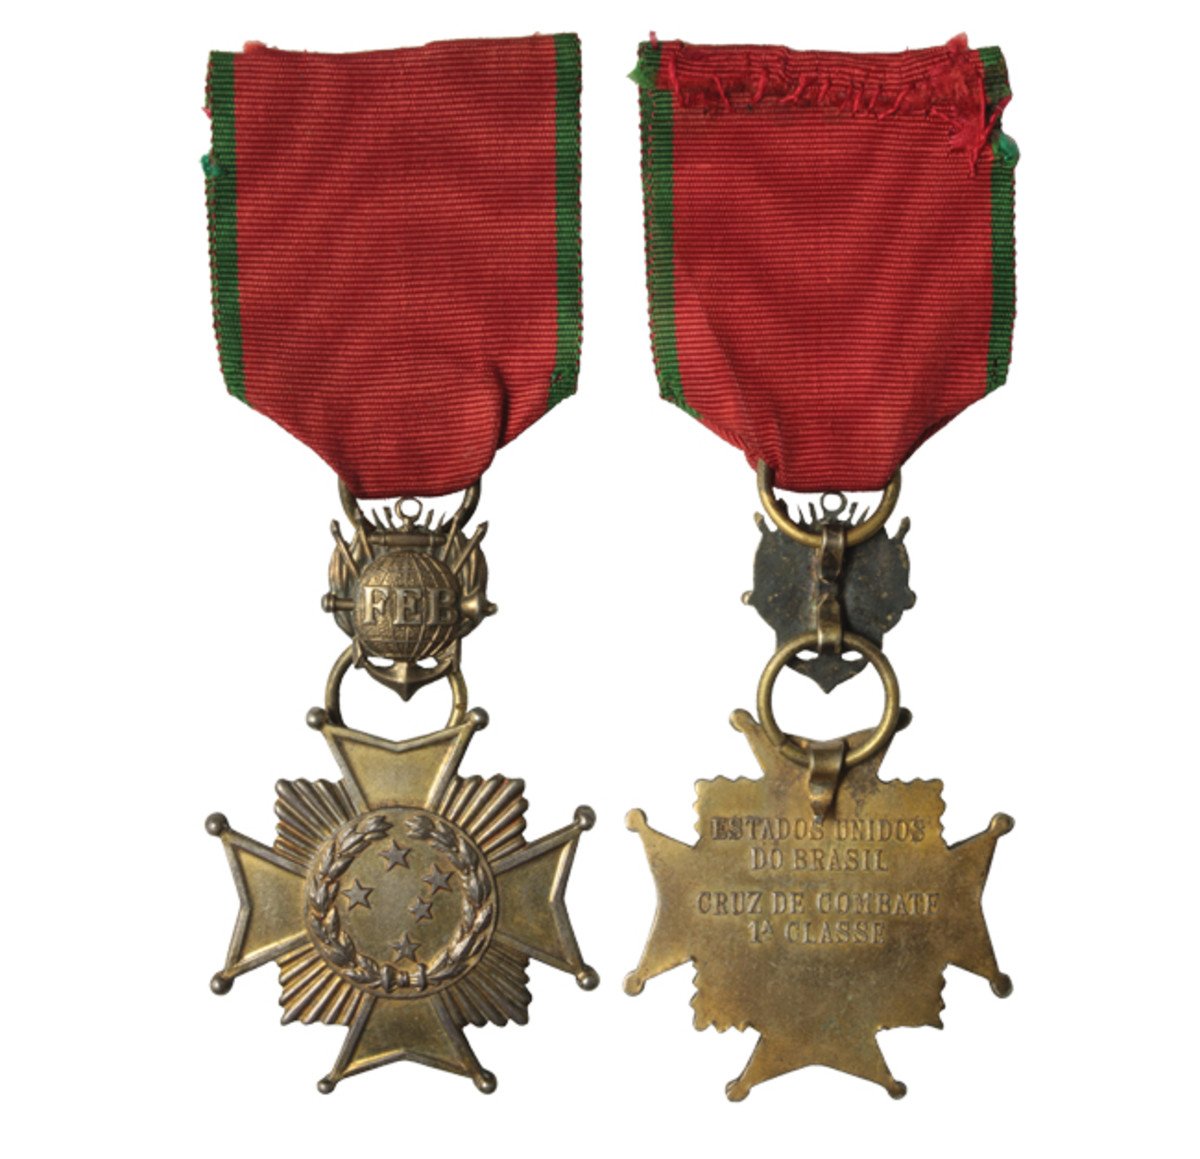 Combat Cross 1st Class (golden finish. It is very similar to the 2nd Class  except for their colors and inscriptions on the reverse. The ribbon bar has a small cross device in golden finish.